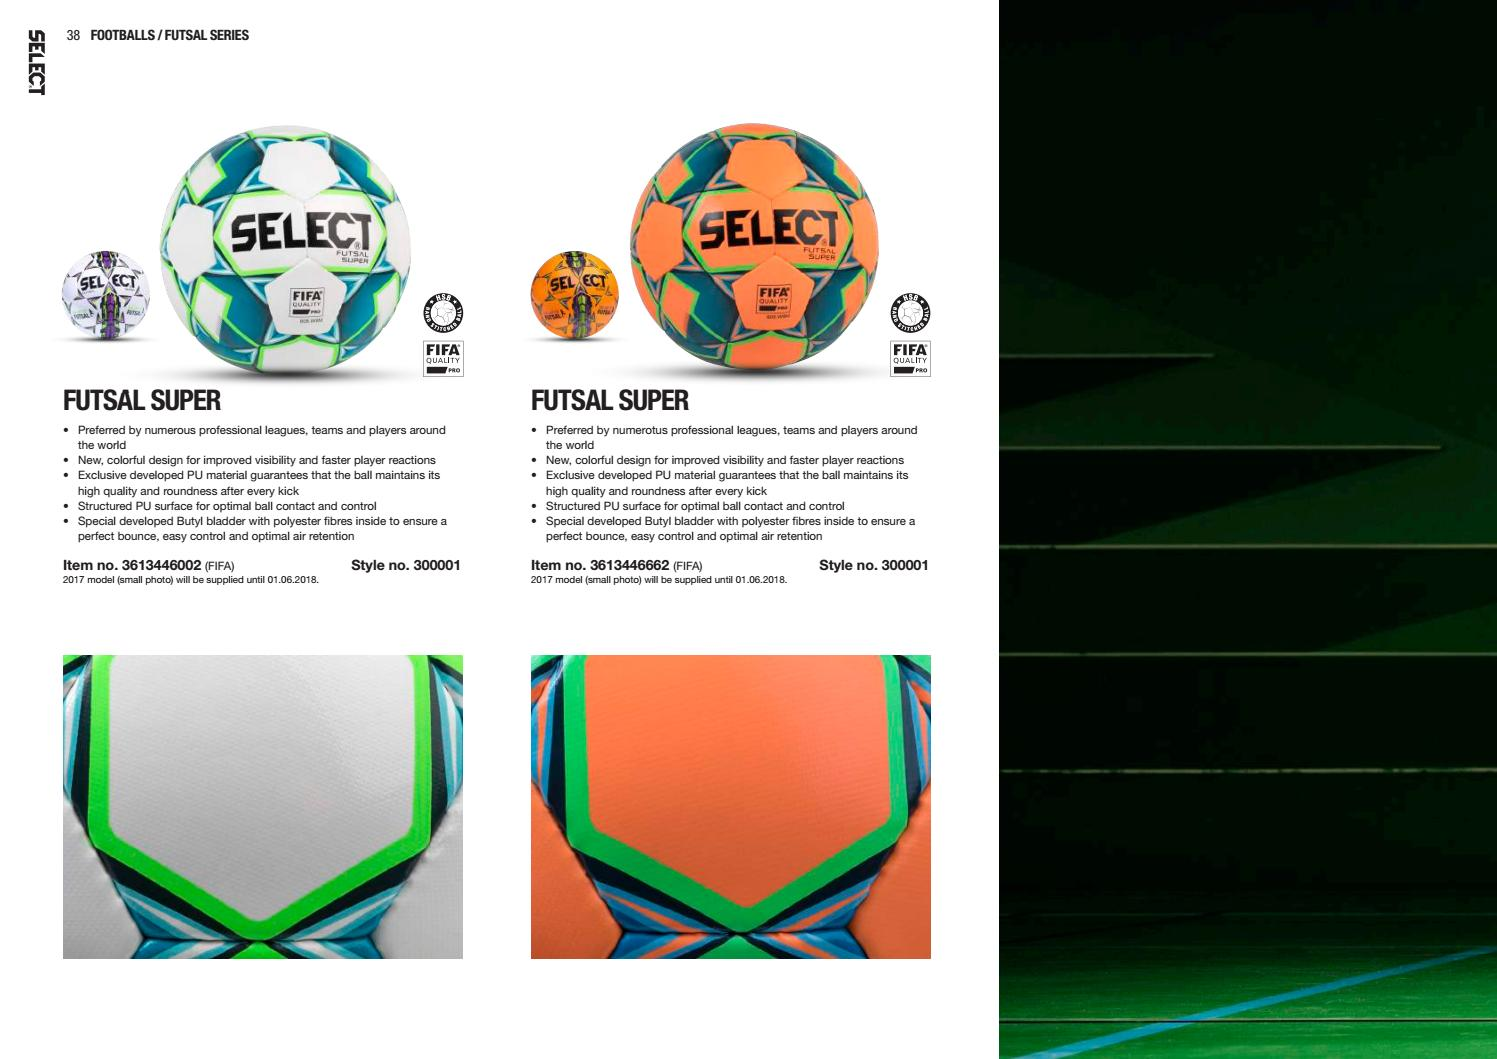 фото  из каталога Select Futsal Super